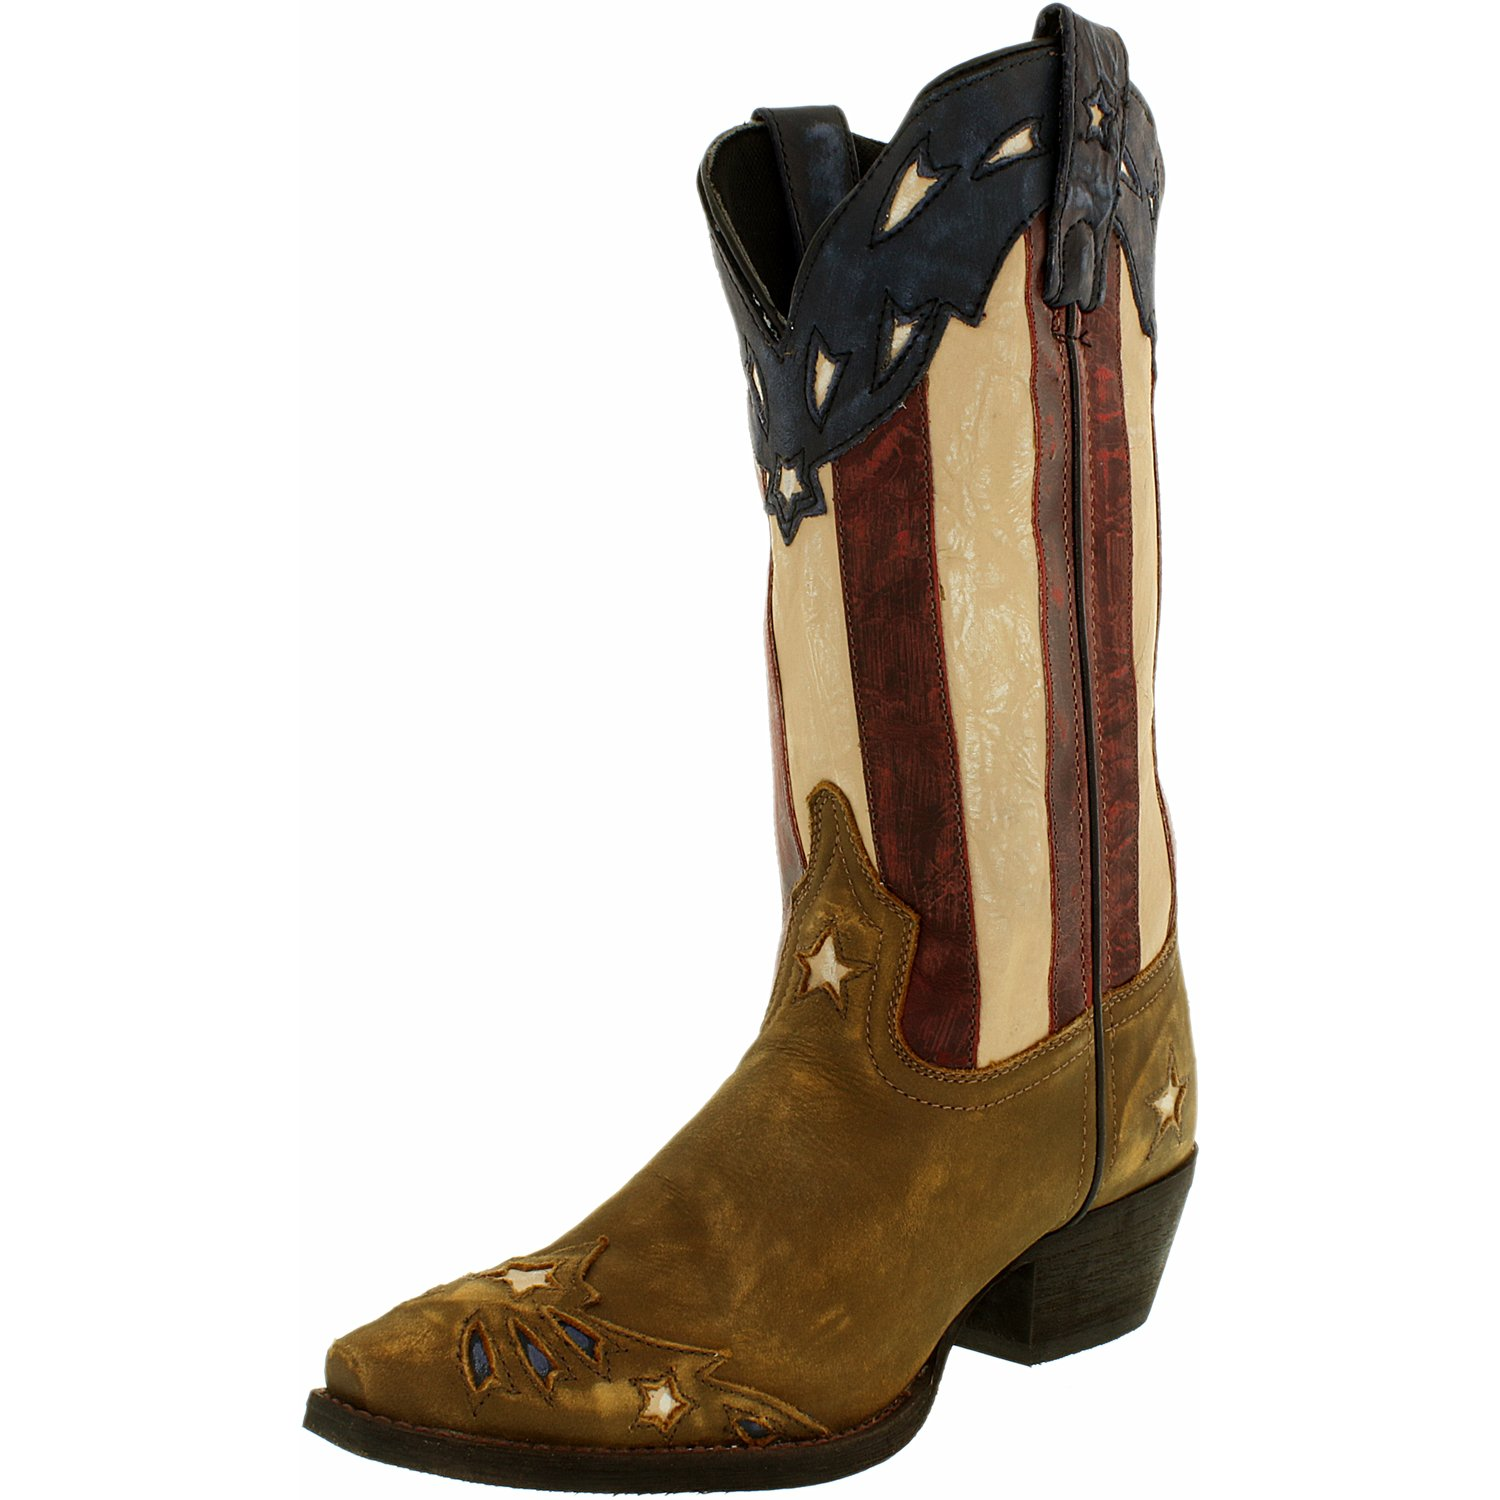 Laredo Women's Stars And Stripes Leather Mid-Calf Leather Boot by Laredo